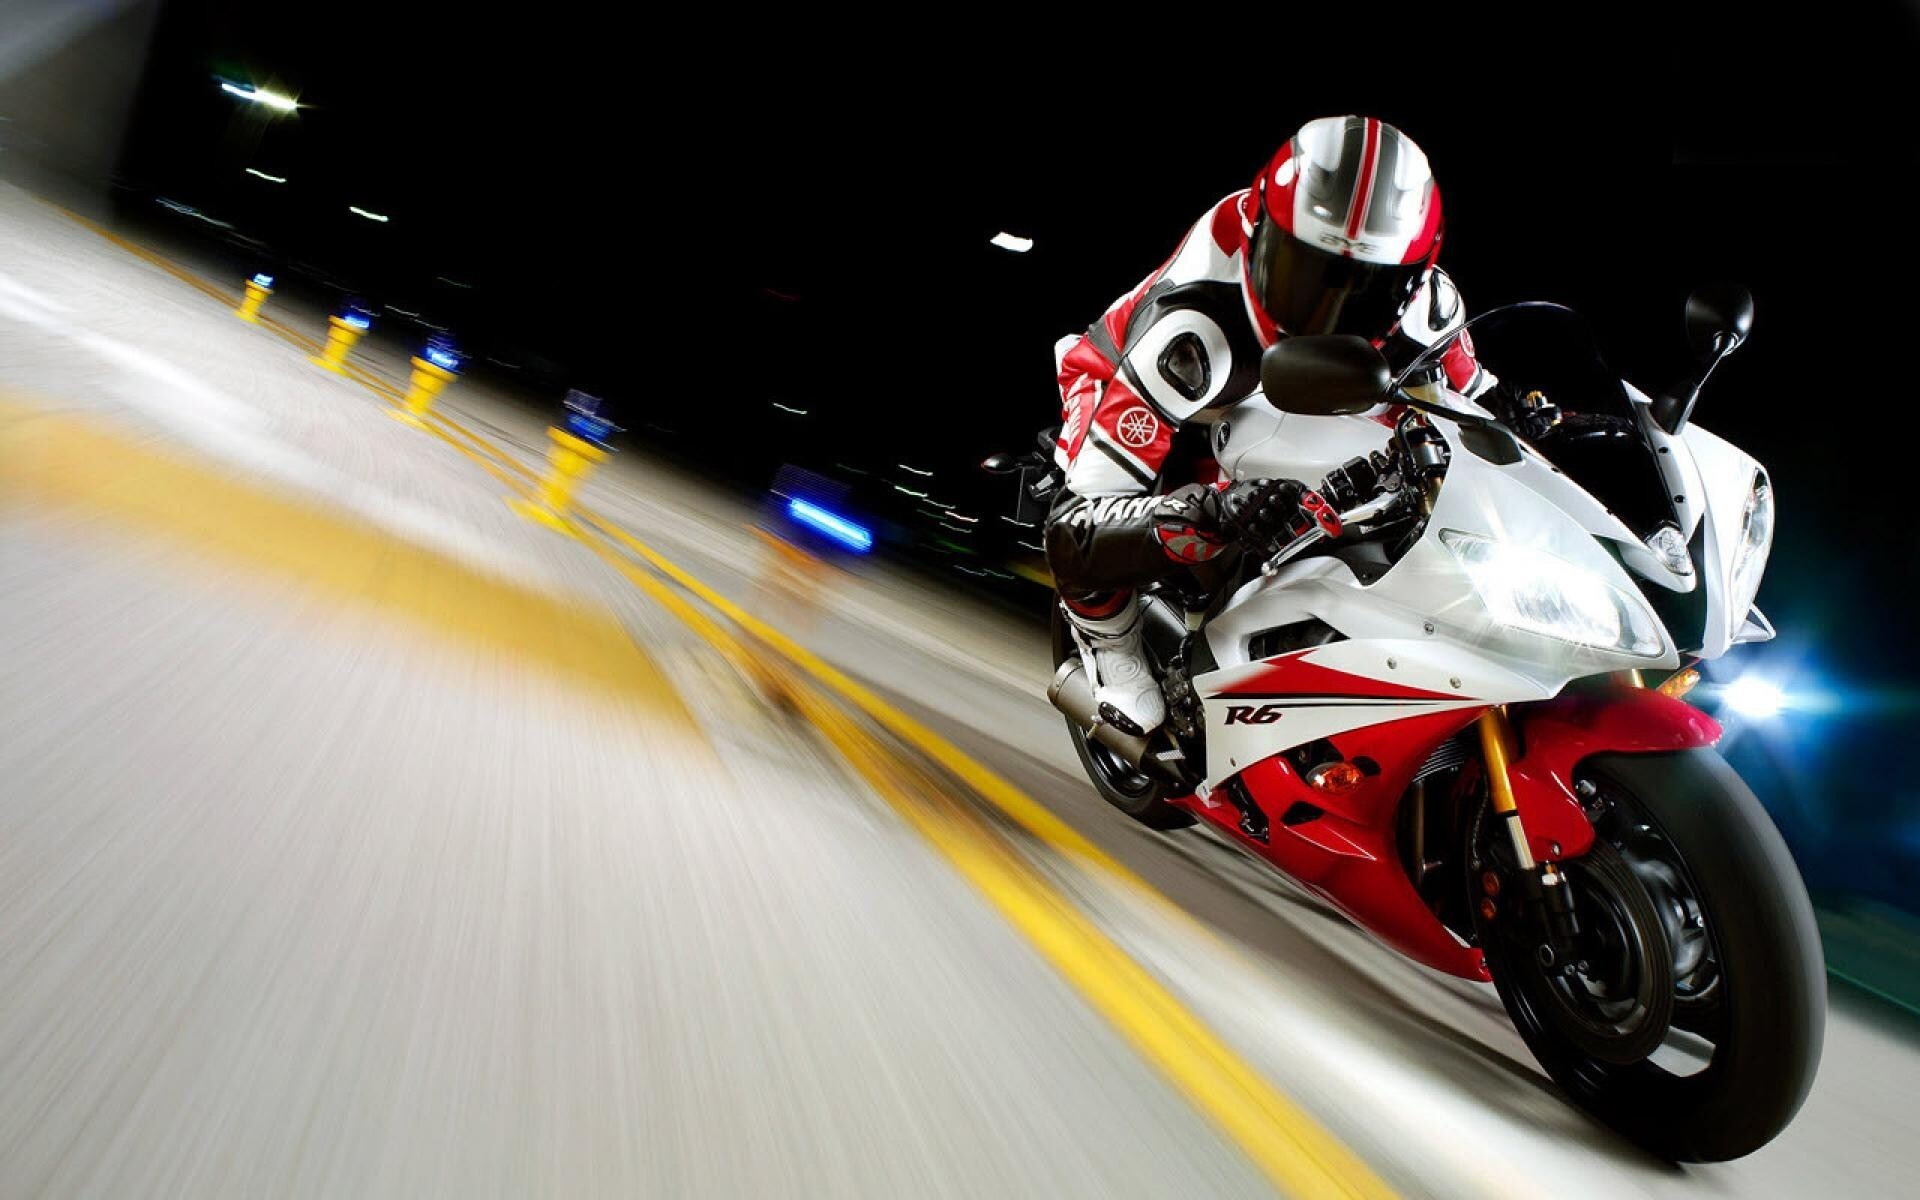 yamaha r6 bike | hd wallpapers